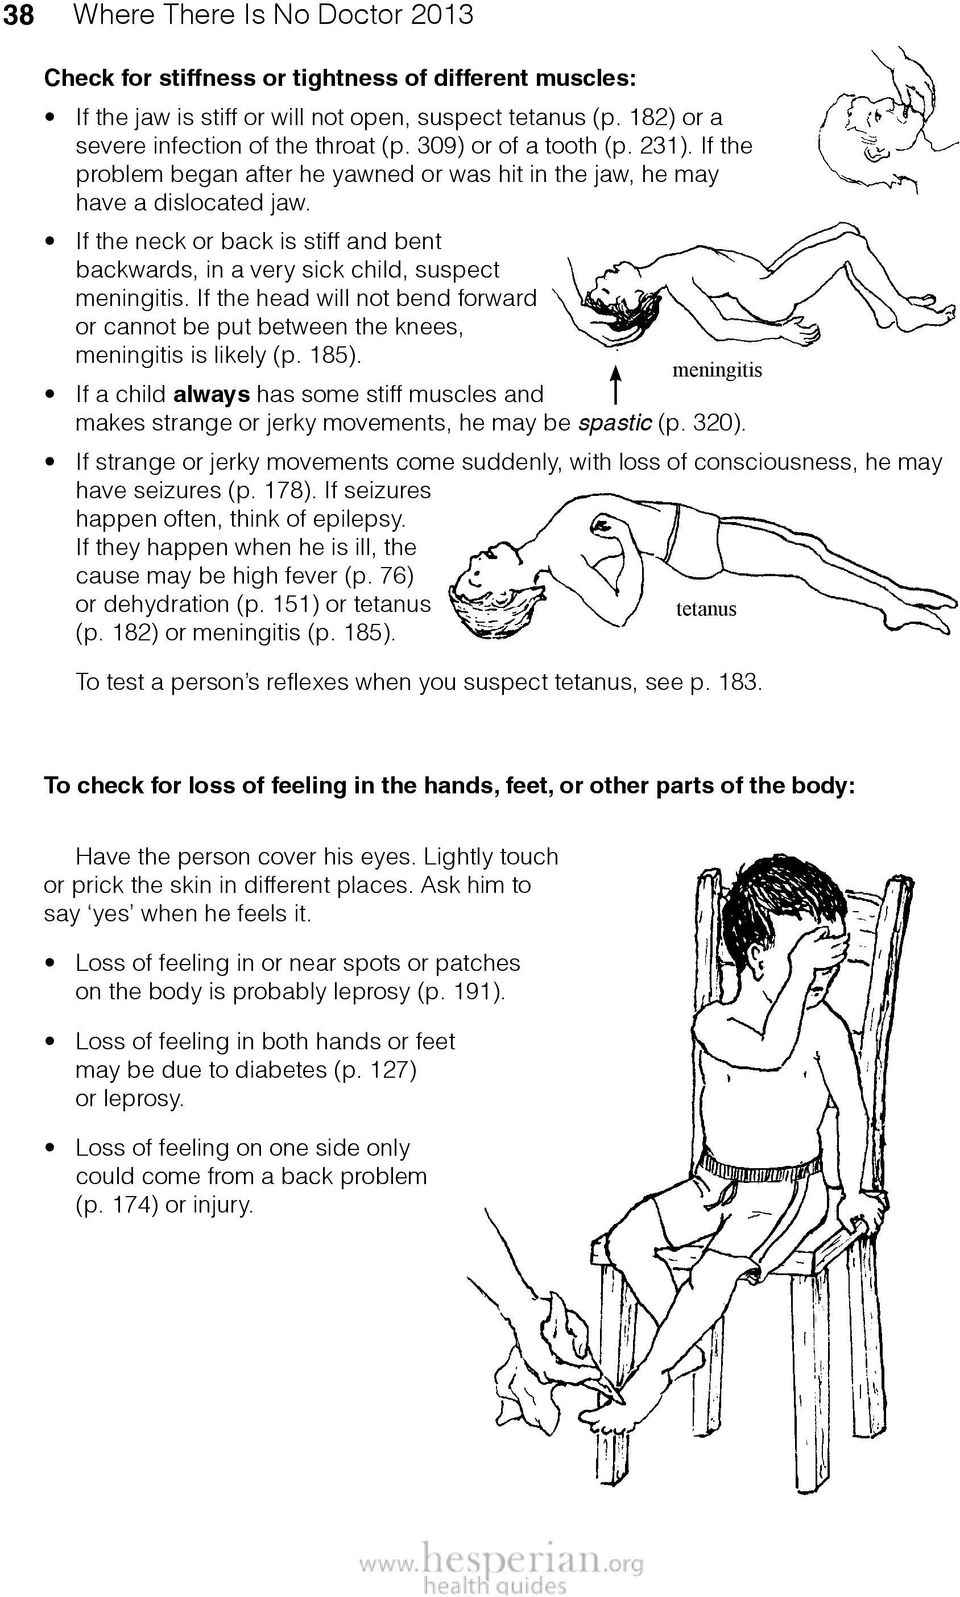 If the head will not bend forward or cannot be put between the knees, meningitis is likely (p. 185).